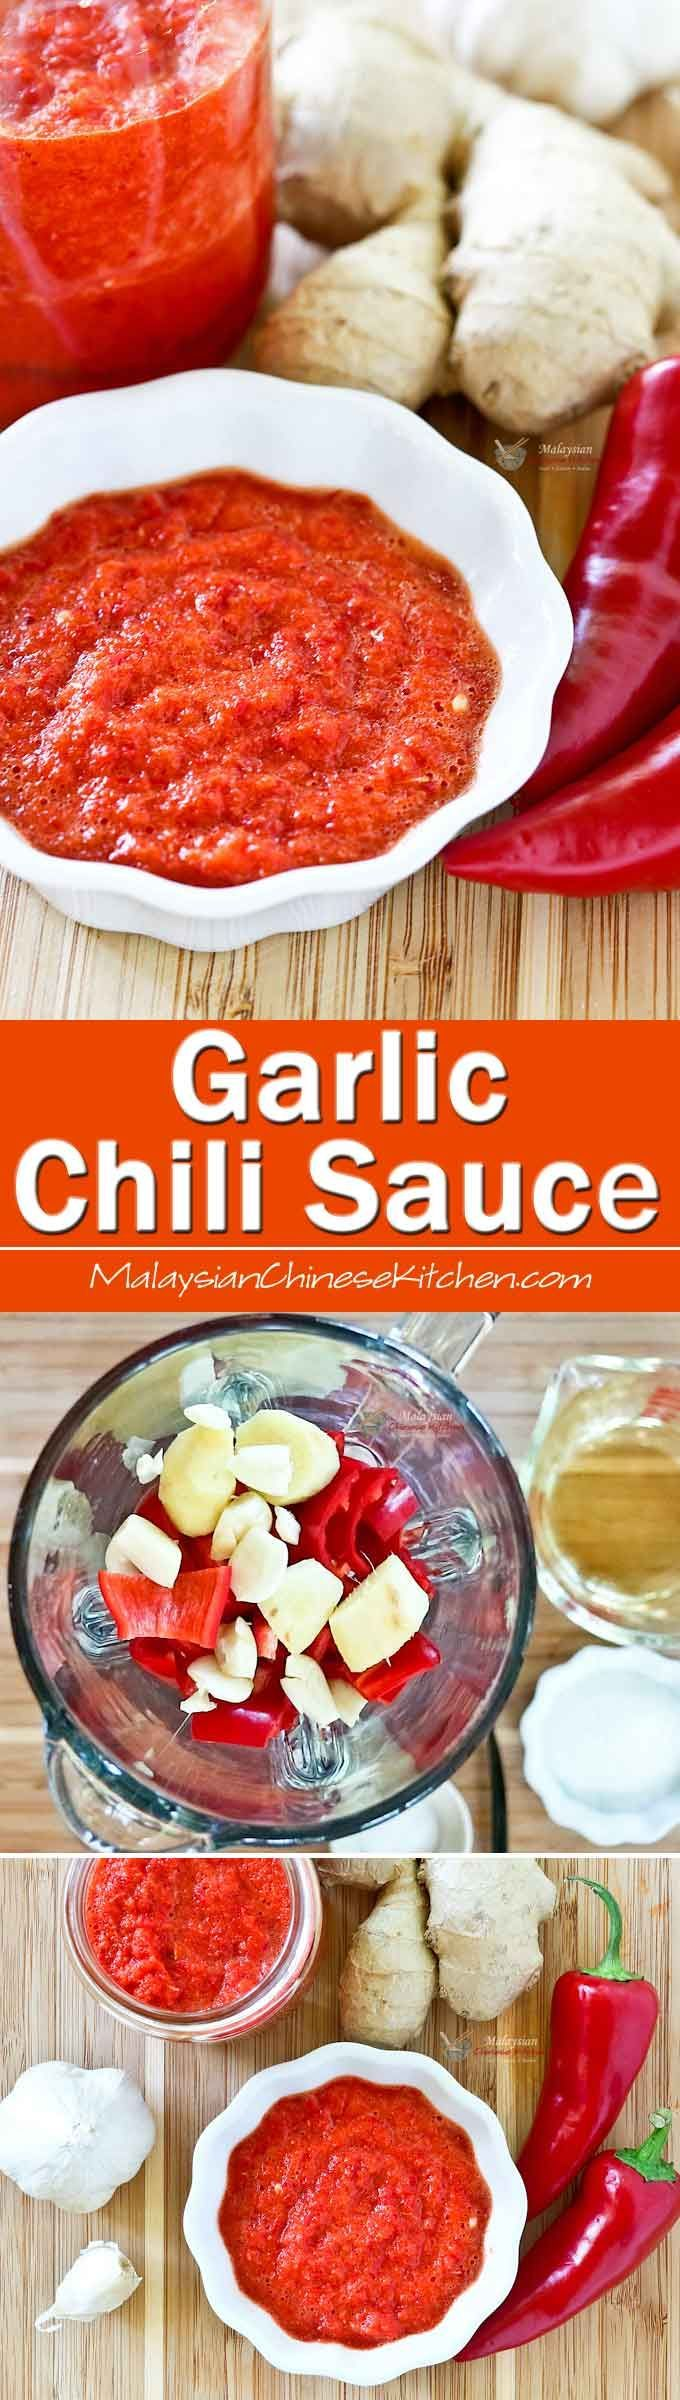 8 Best Sambal Images On Pinterest Cooking Food Indonesian Cuisine Tuk By Rumah Giling This Simple No Cook Garlic Chili Sauce Is A Tasty Condiment To Have Hand